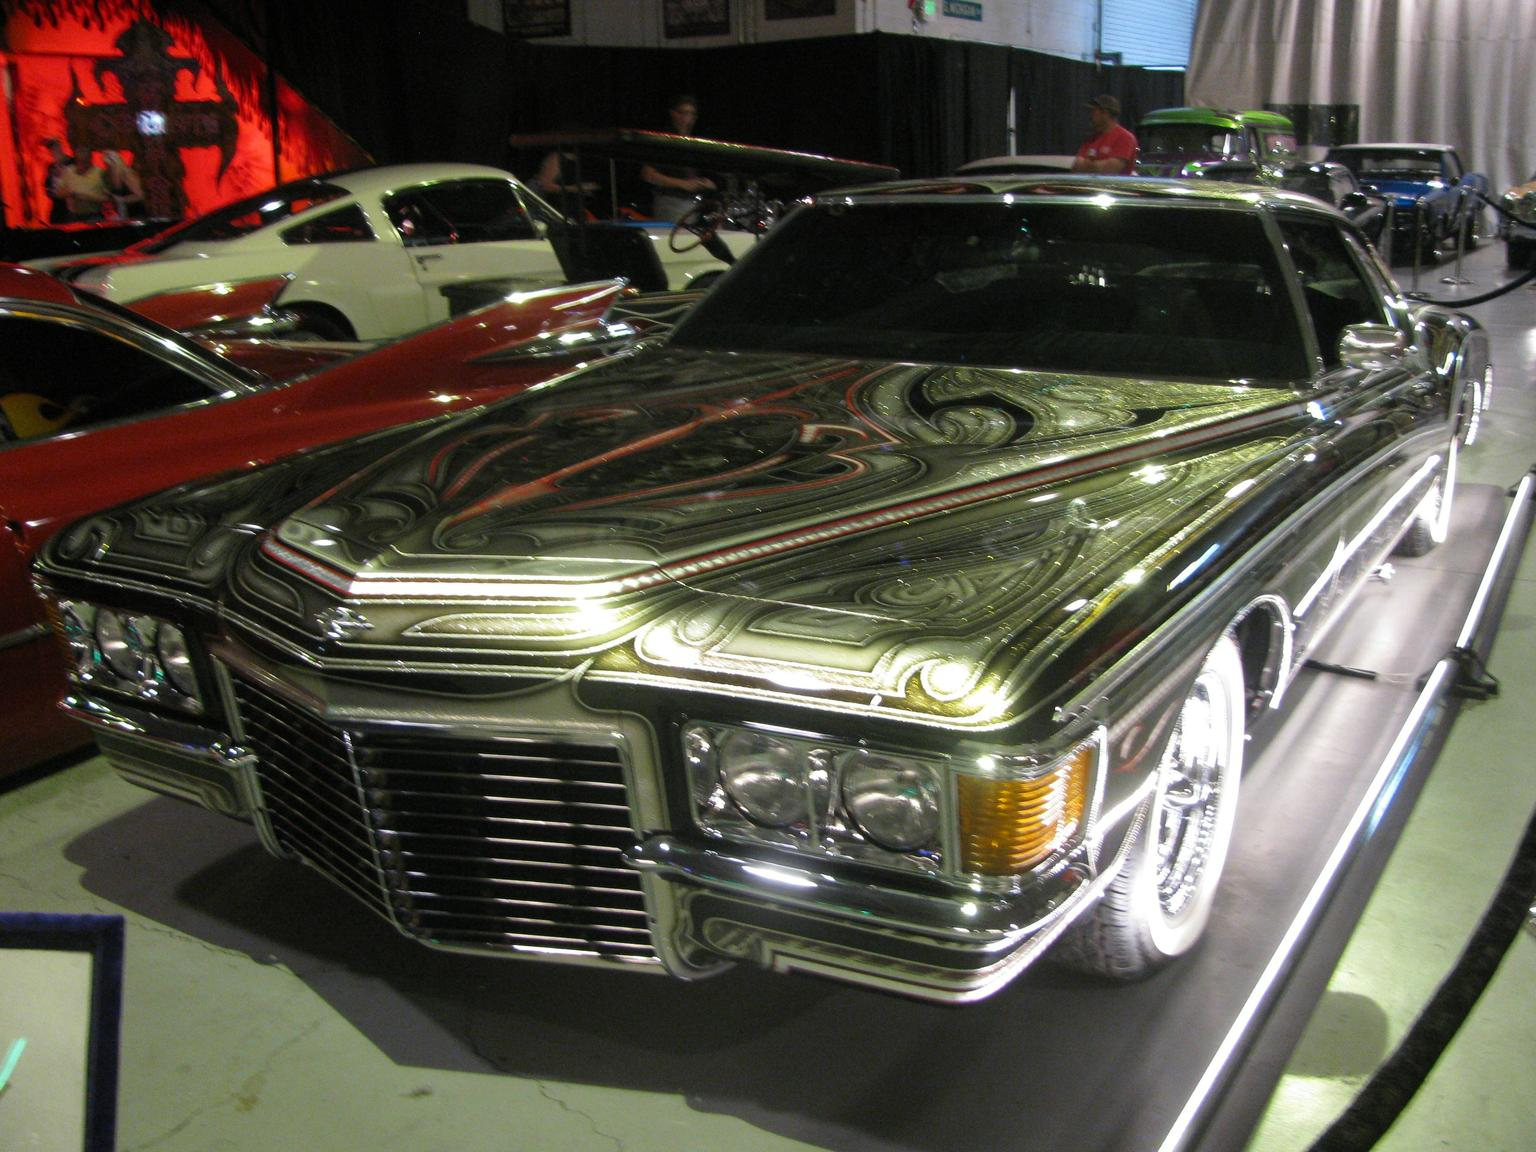 Count Kustom's Las Vegas Experience with Lunch or Dinner